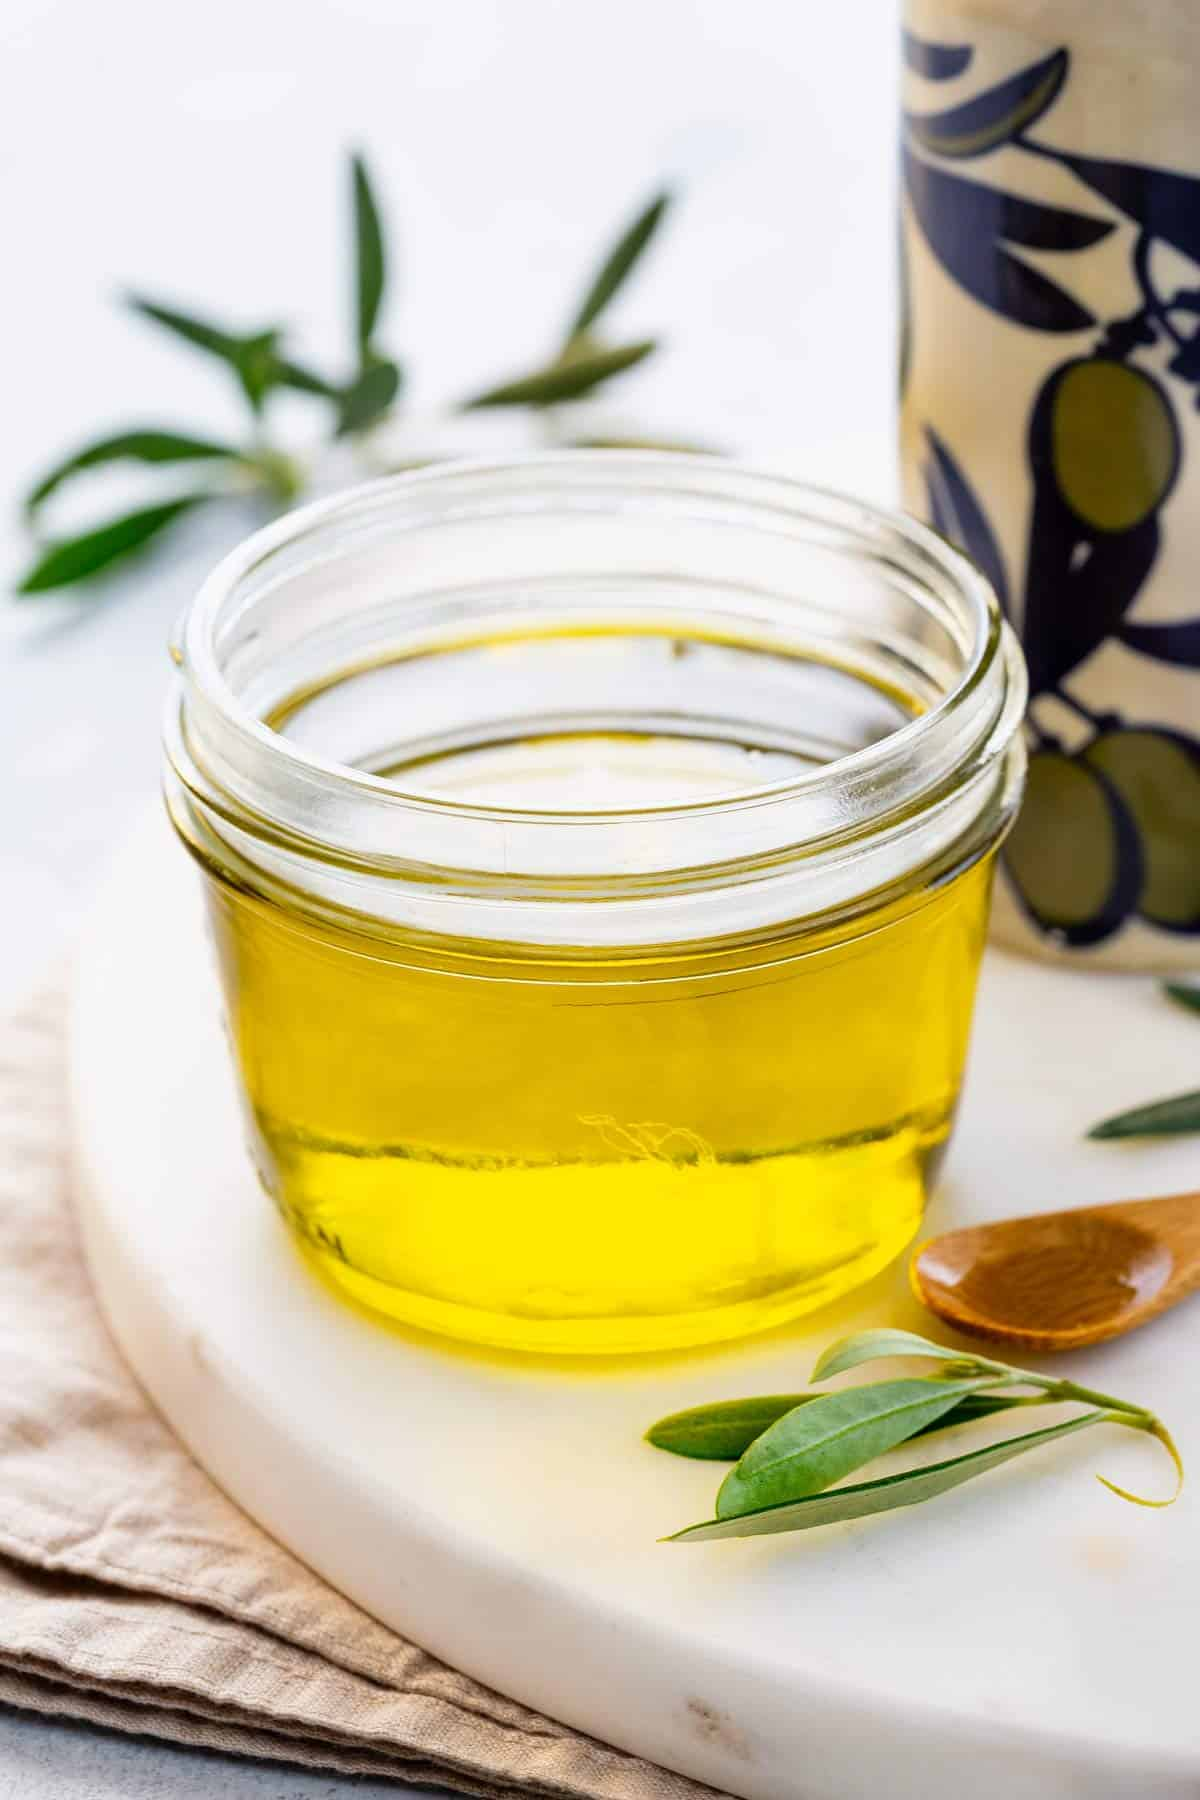 Olive oil benefits your body, your brain, and your recipes! This oil is used to enhance the flavor and it conducts higher temperatures to cook food quickly. #oliveoil #cookingoil #cooking101 #foodscience